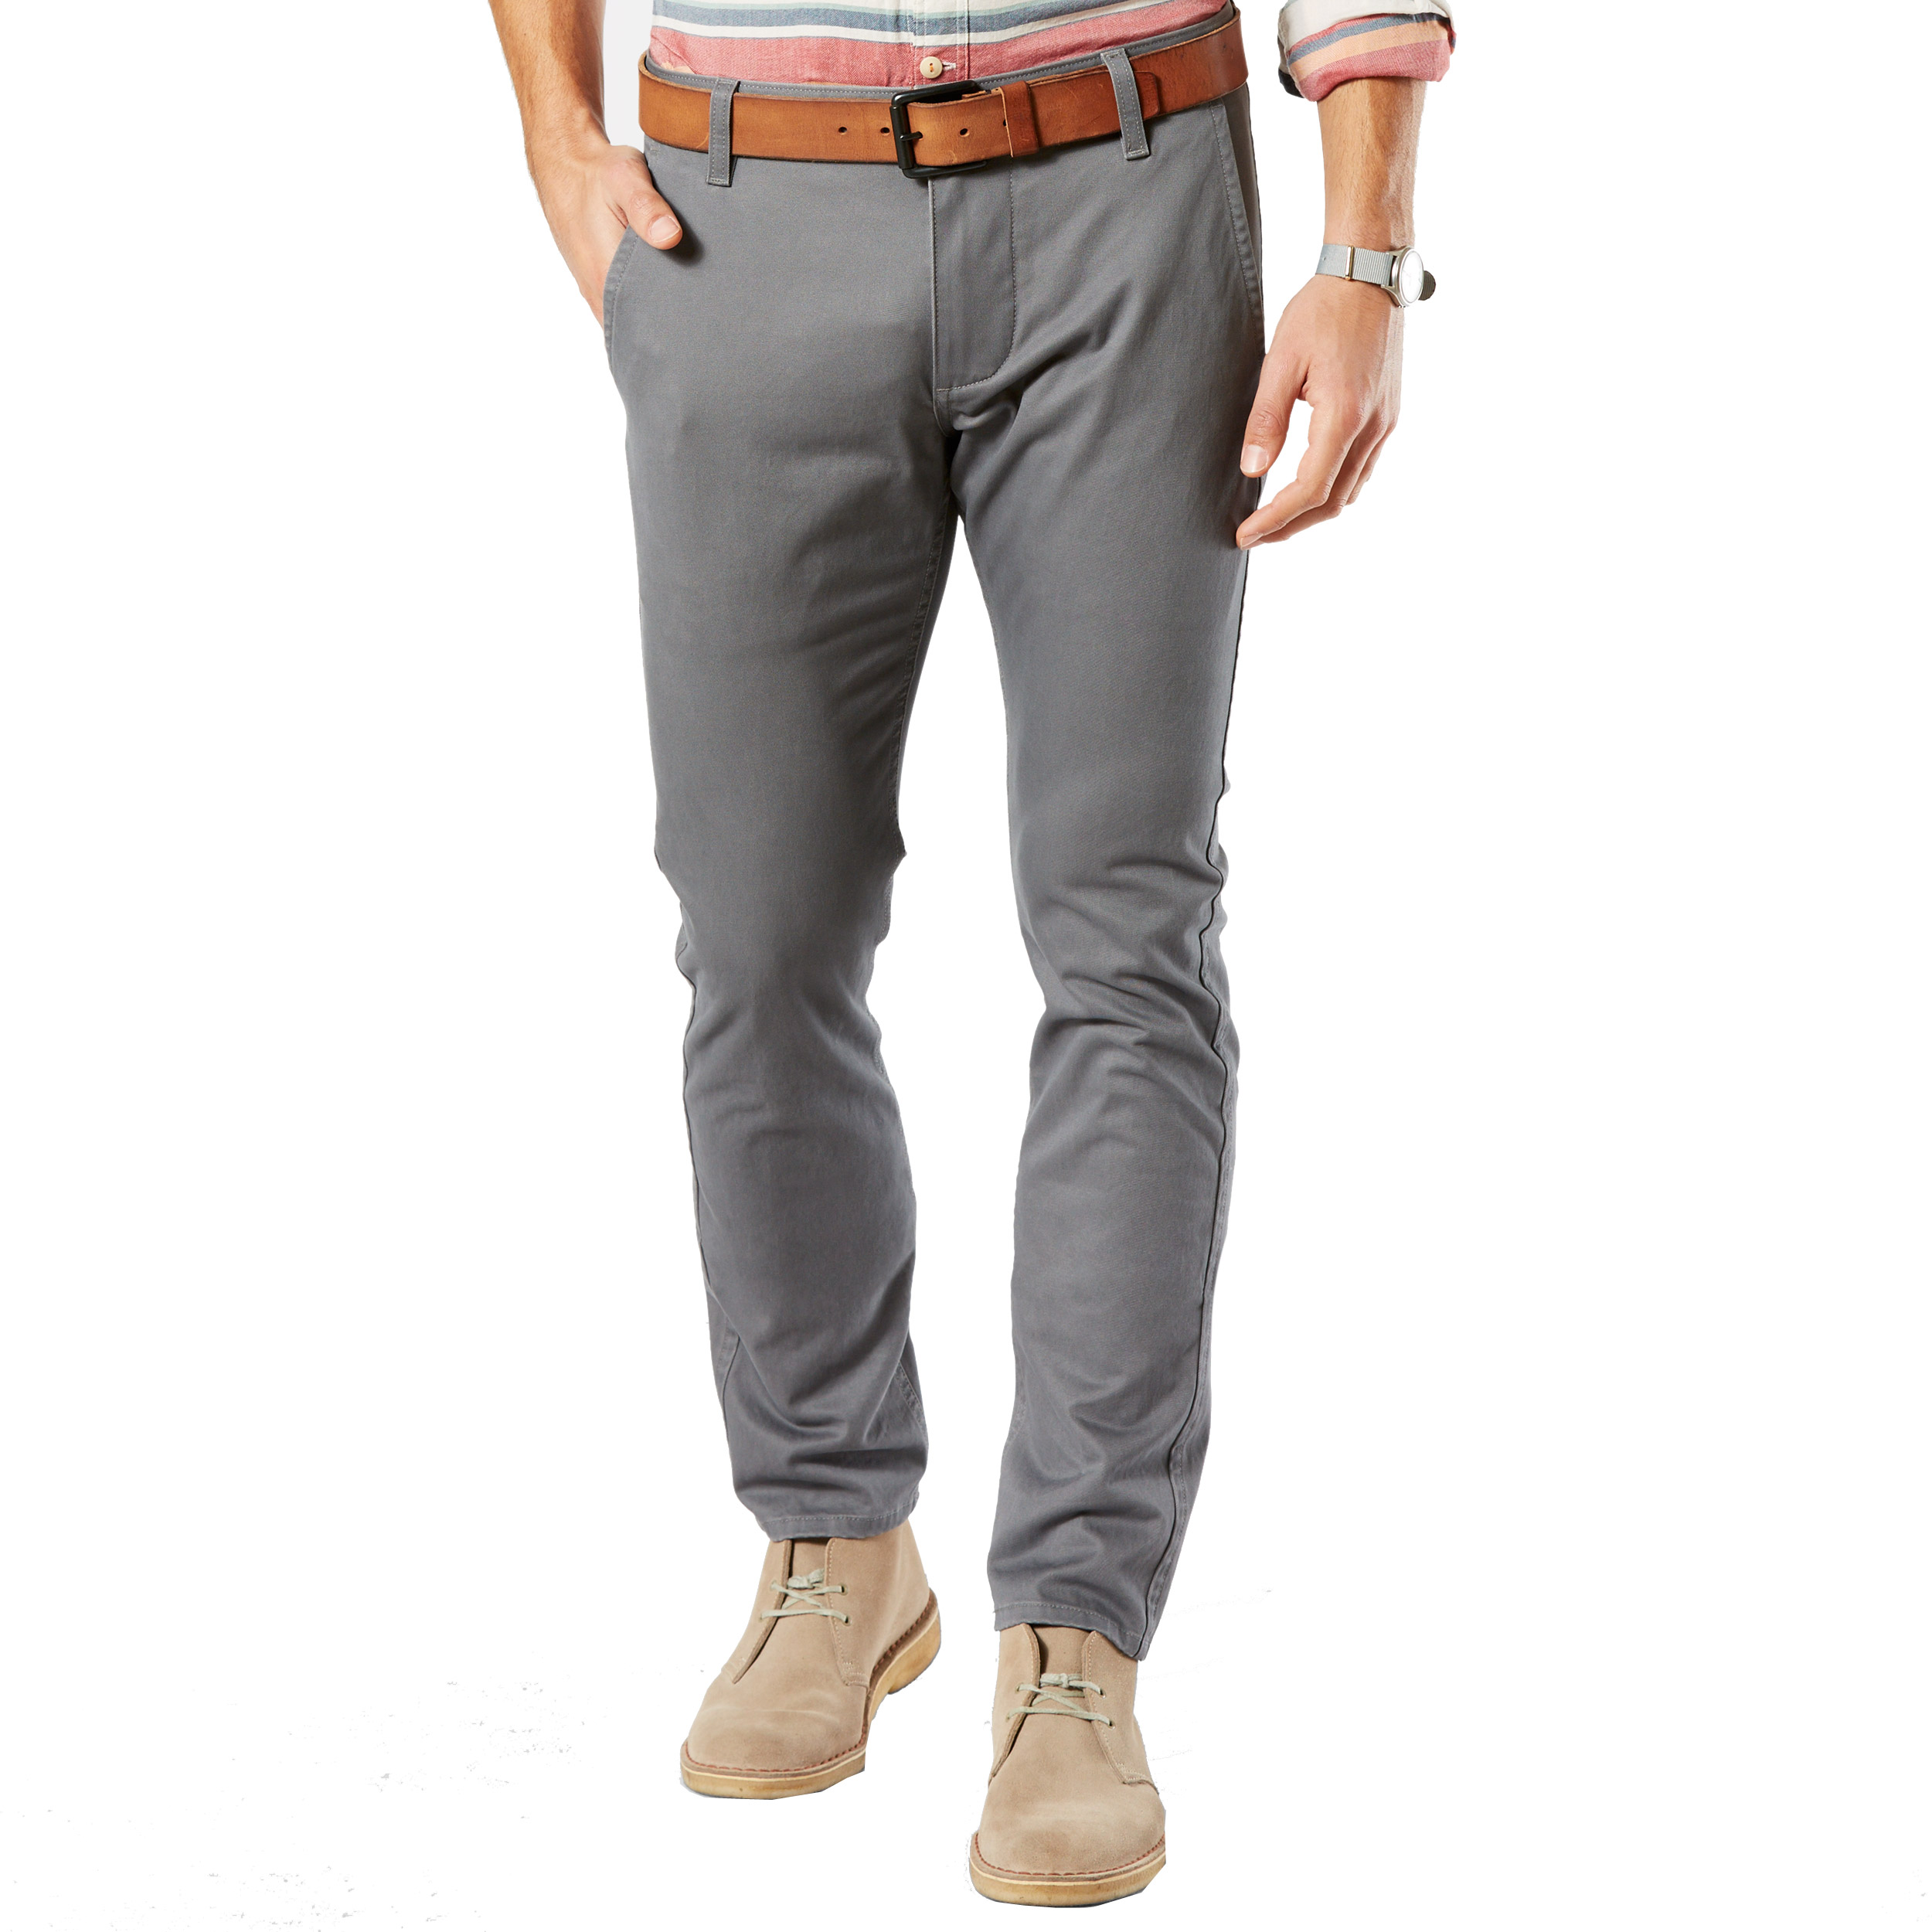 Pantalon alpha stretch khaki original skinny tapered  en sergé de coton gris